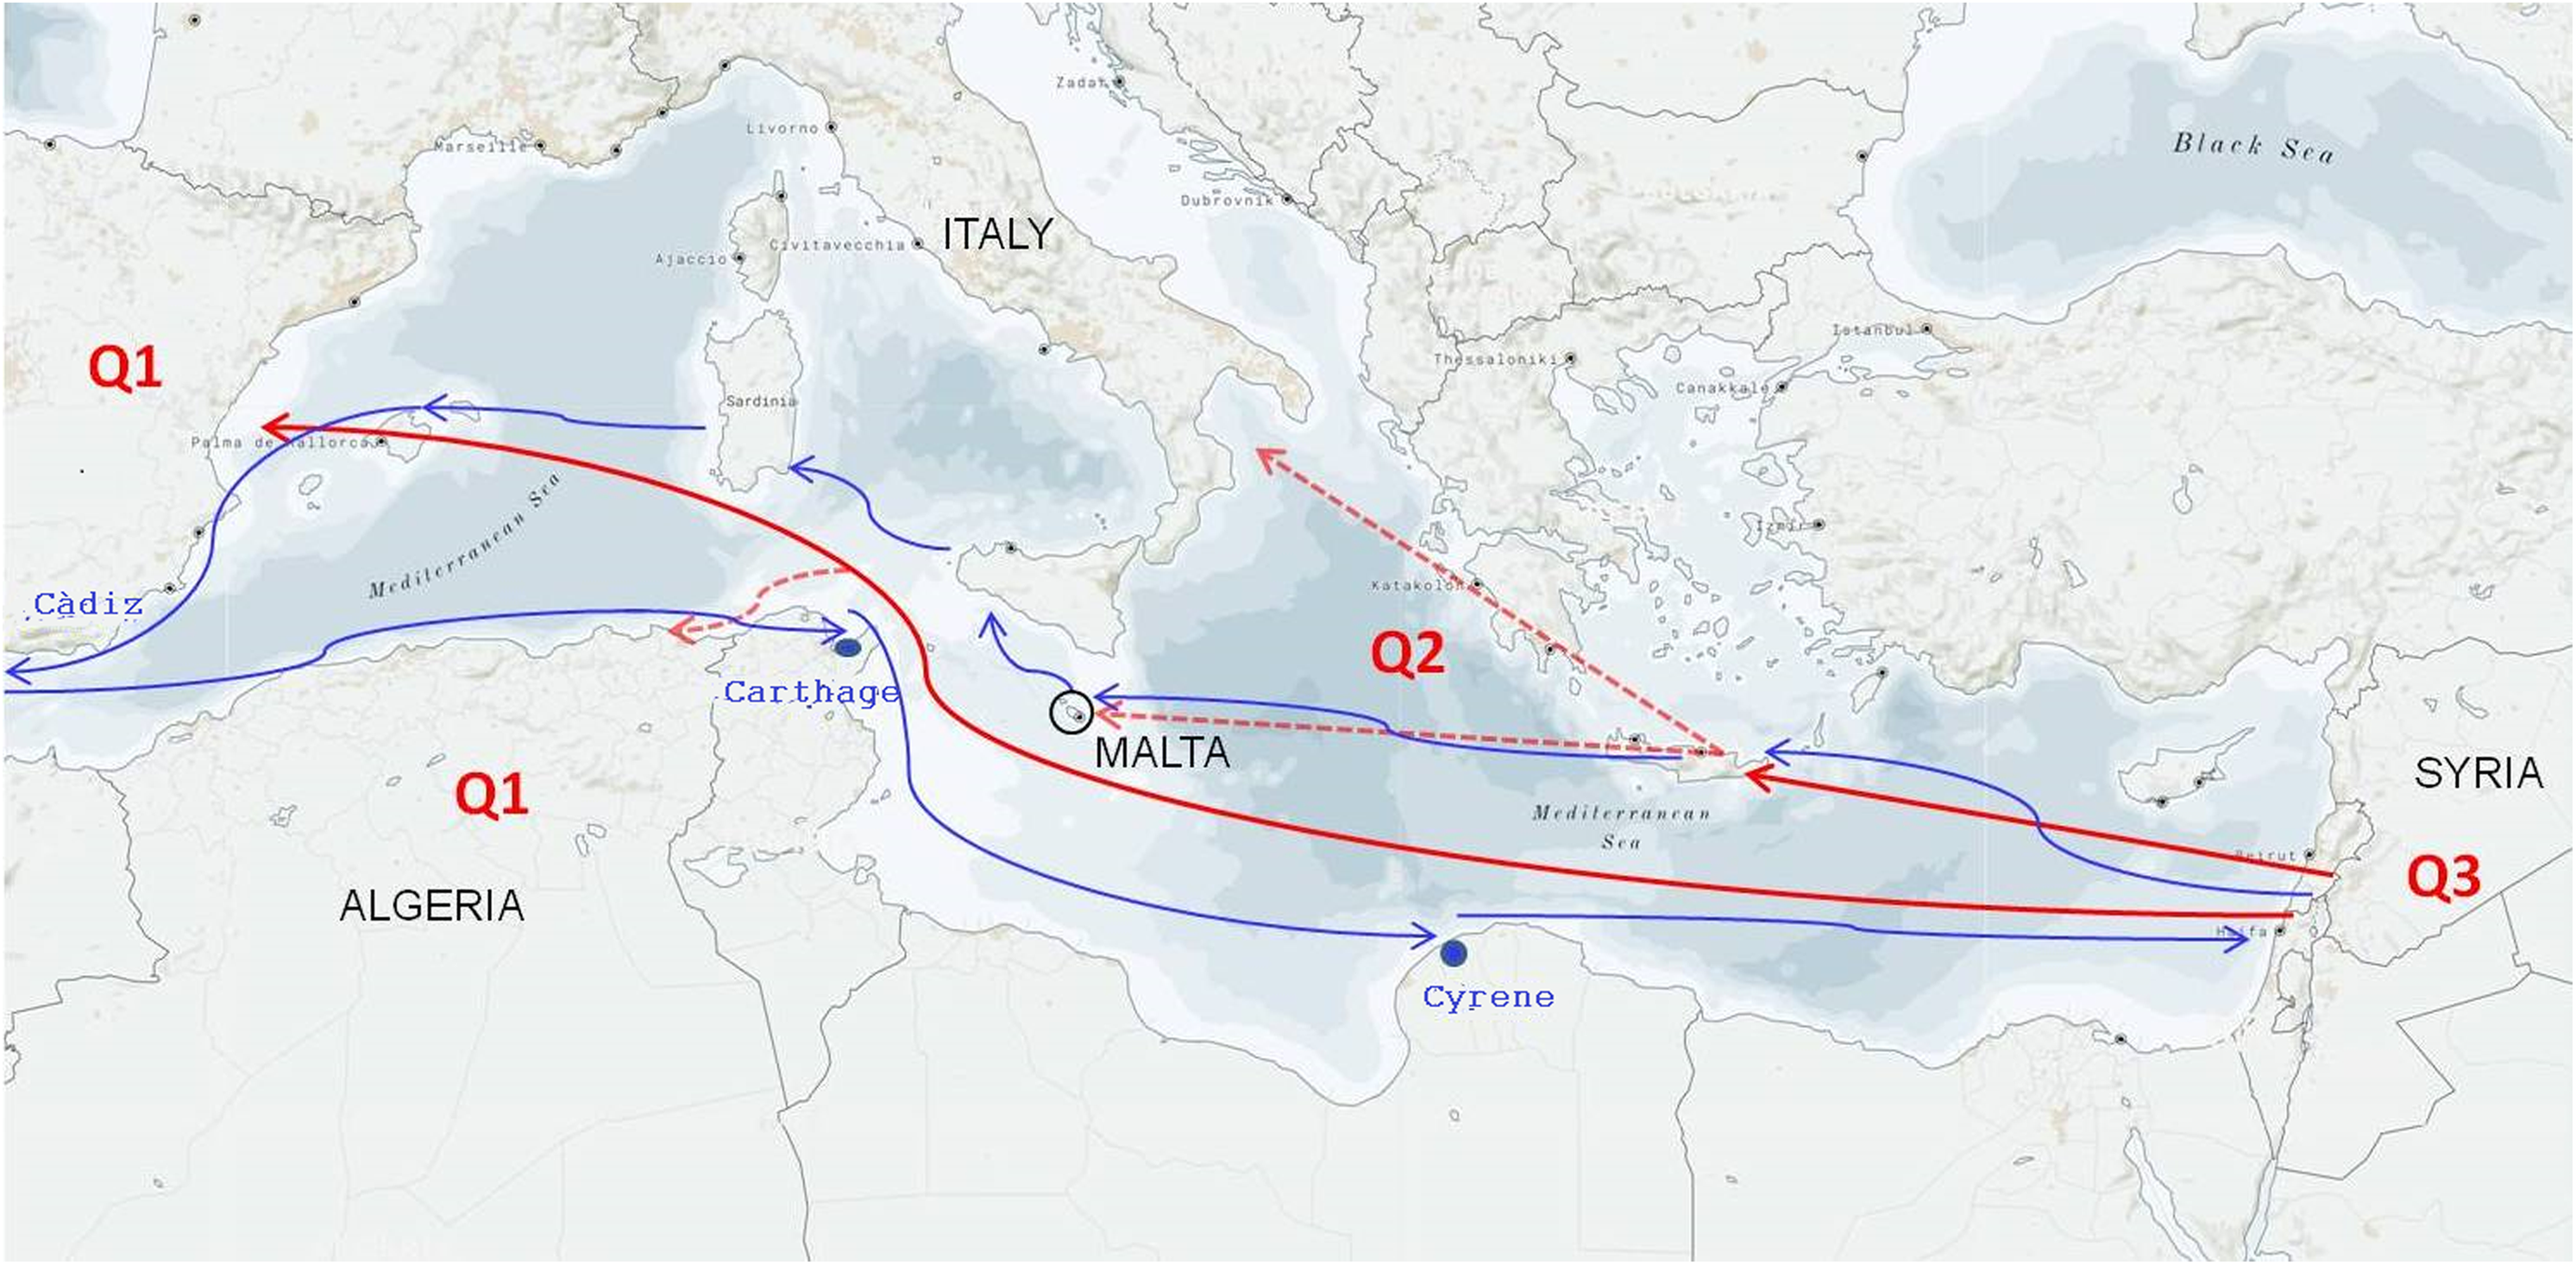 Genetic flow among olive populations within the Mediterranean basin